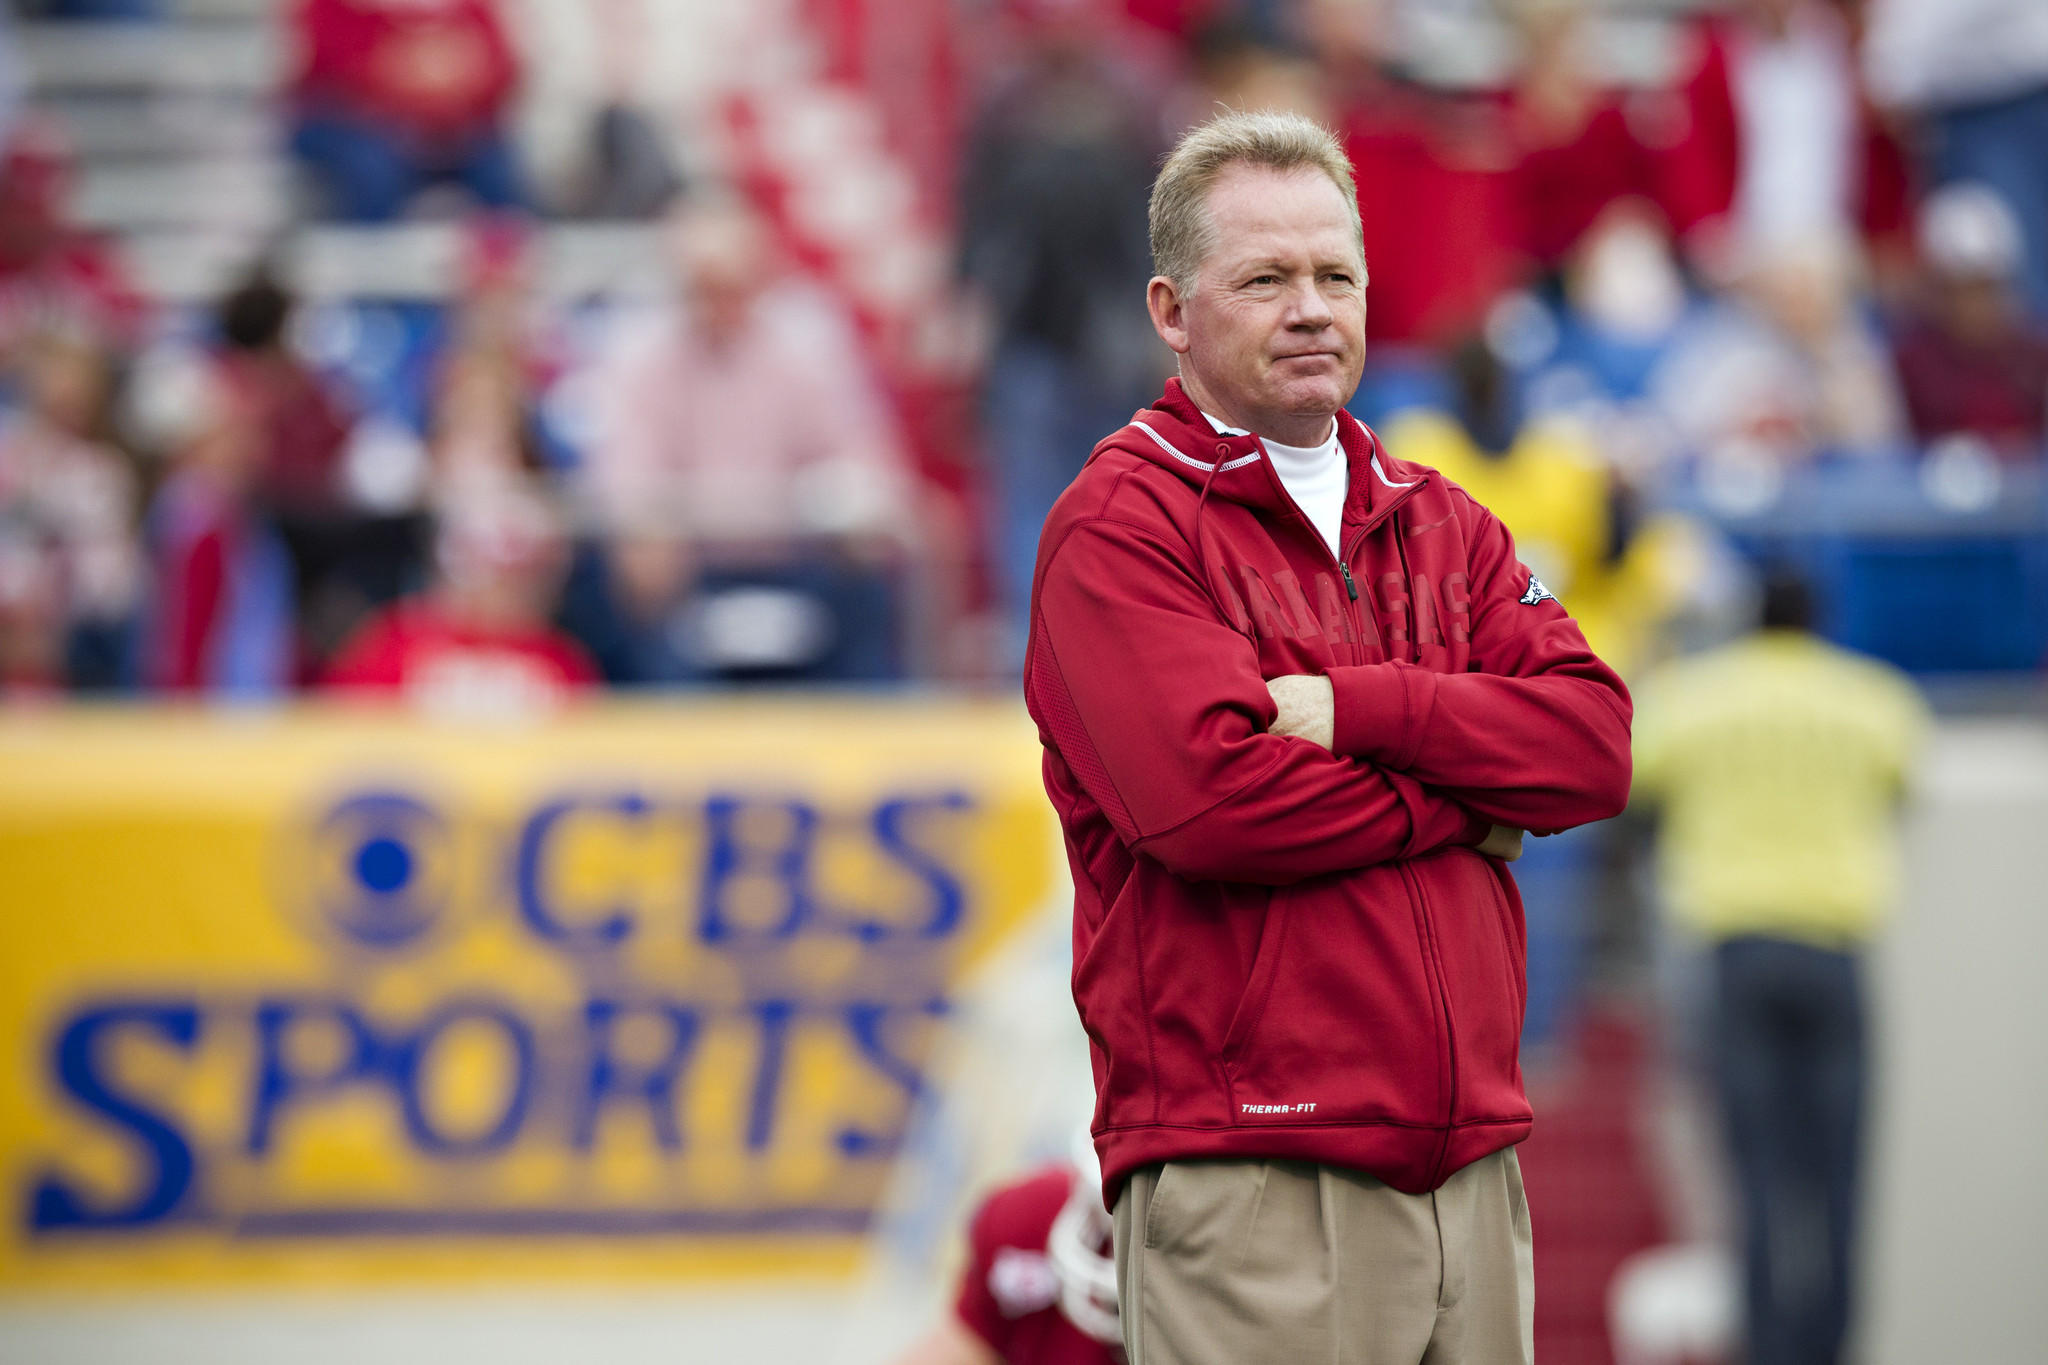 Bobby Petrino was fired by Arkansas in April 2012 and coached last season at Western Kentucky.